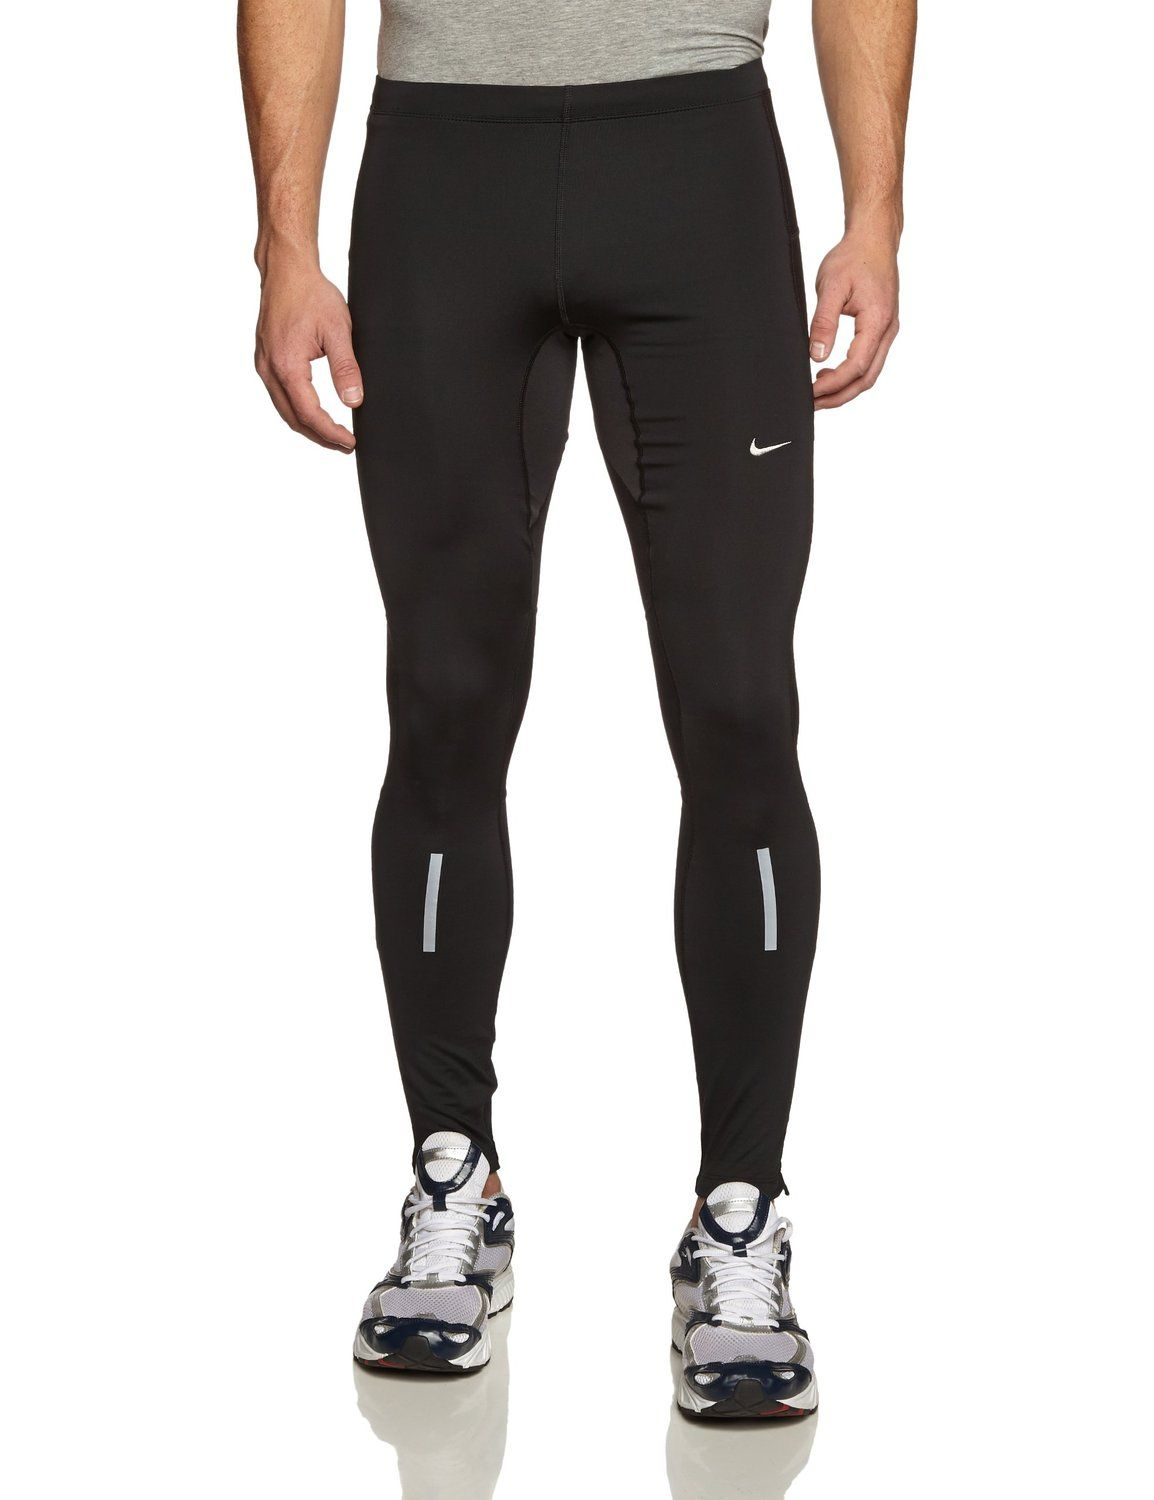 e4fc8e6ba77a Amazon.com  Men s Nike Element Thermal Running Tights  Sports   Outdoors